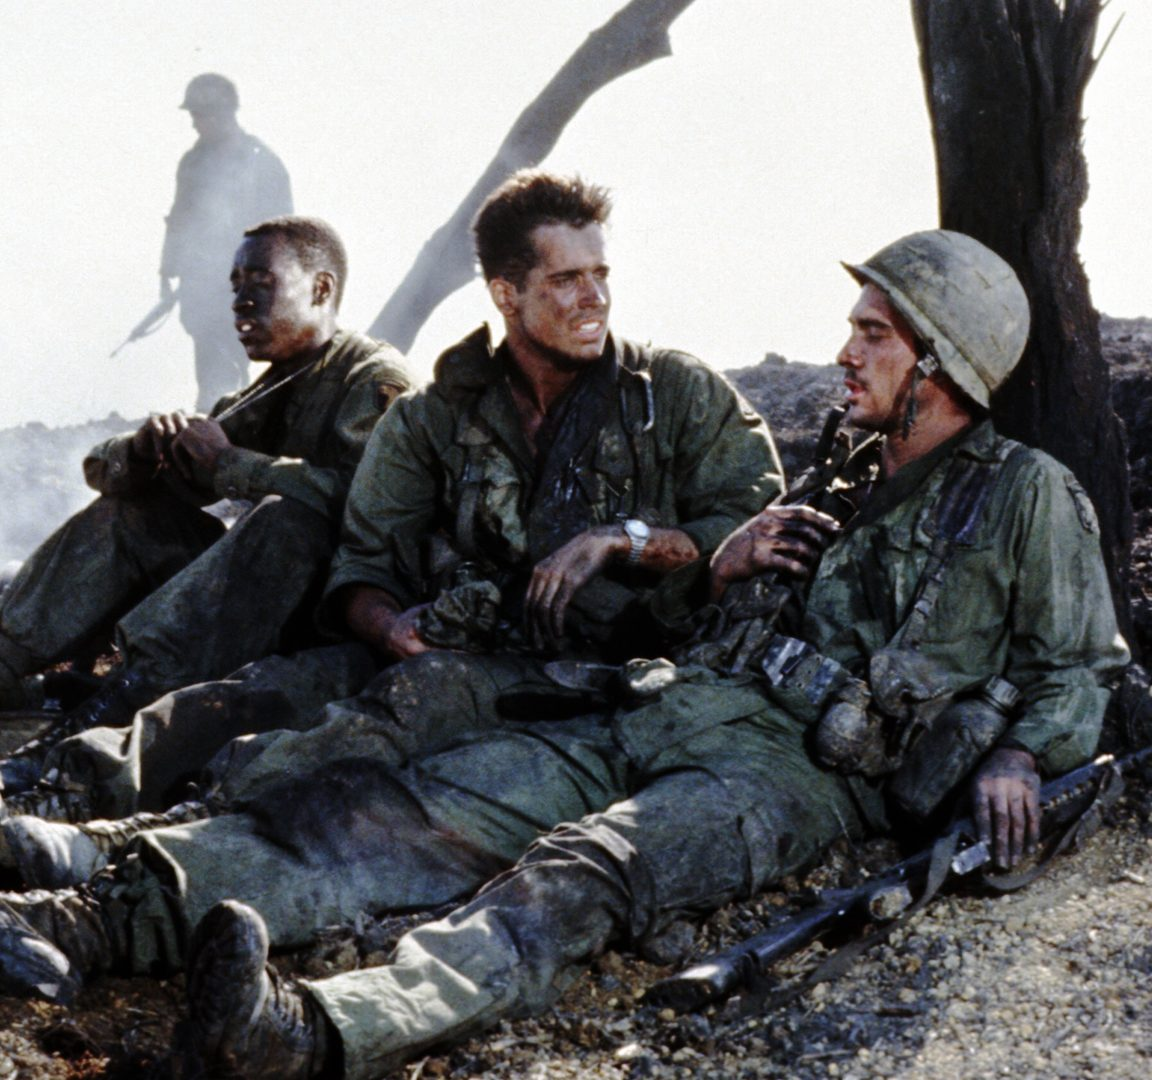 1 34 e1606909468761 30 Things You Probably Didn't Know About Platoon